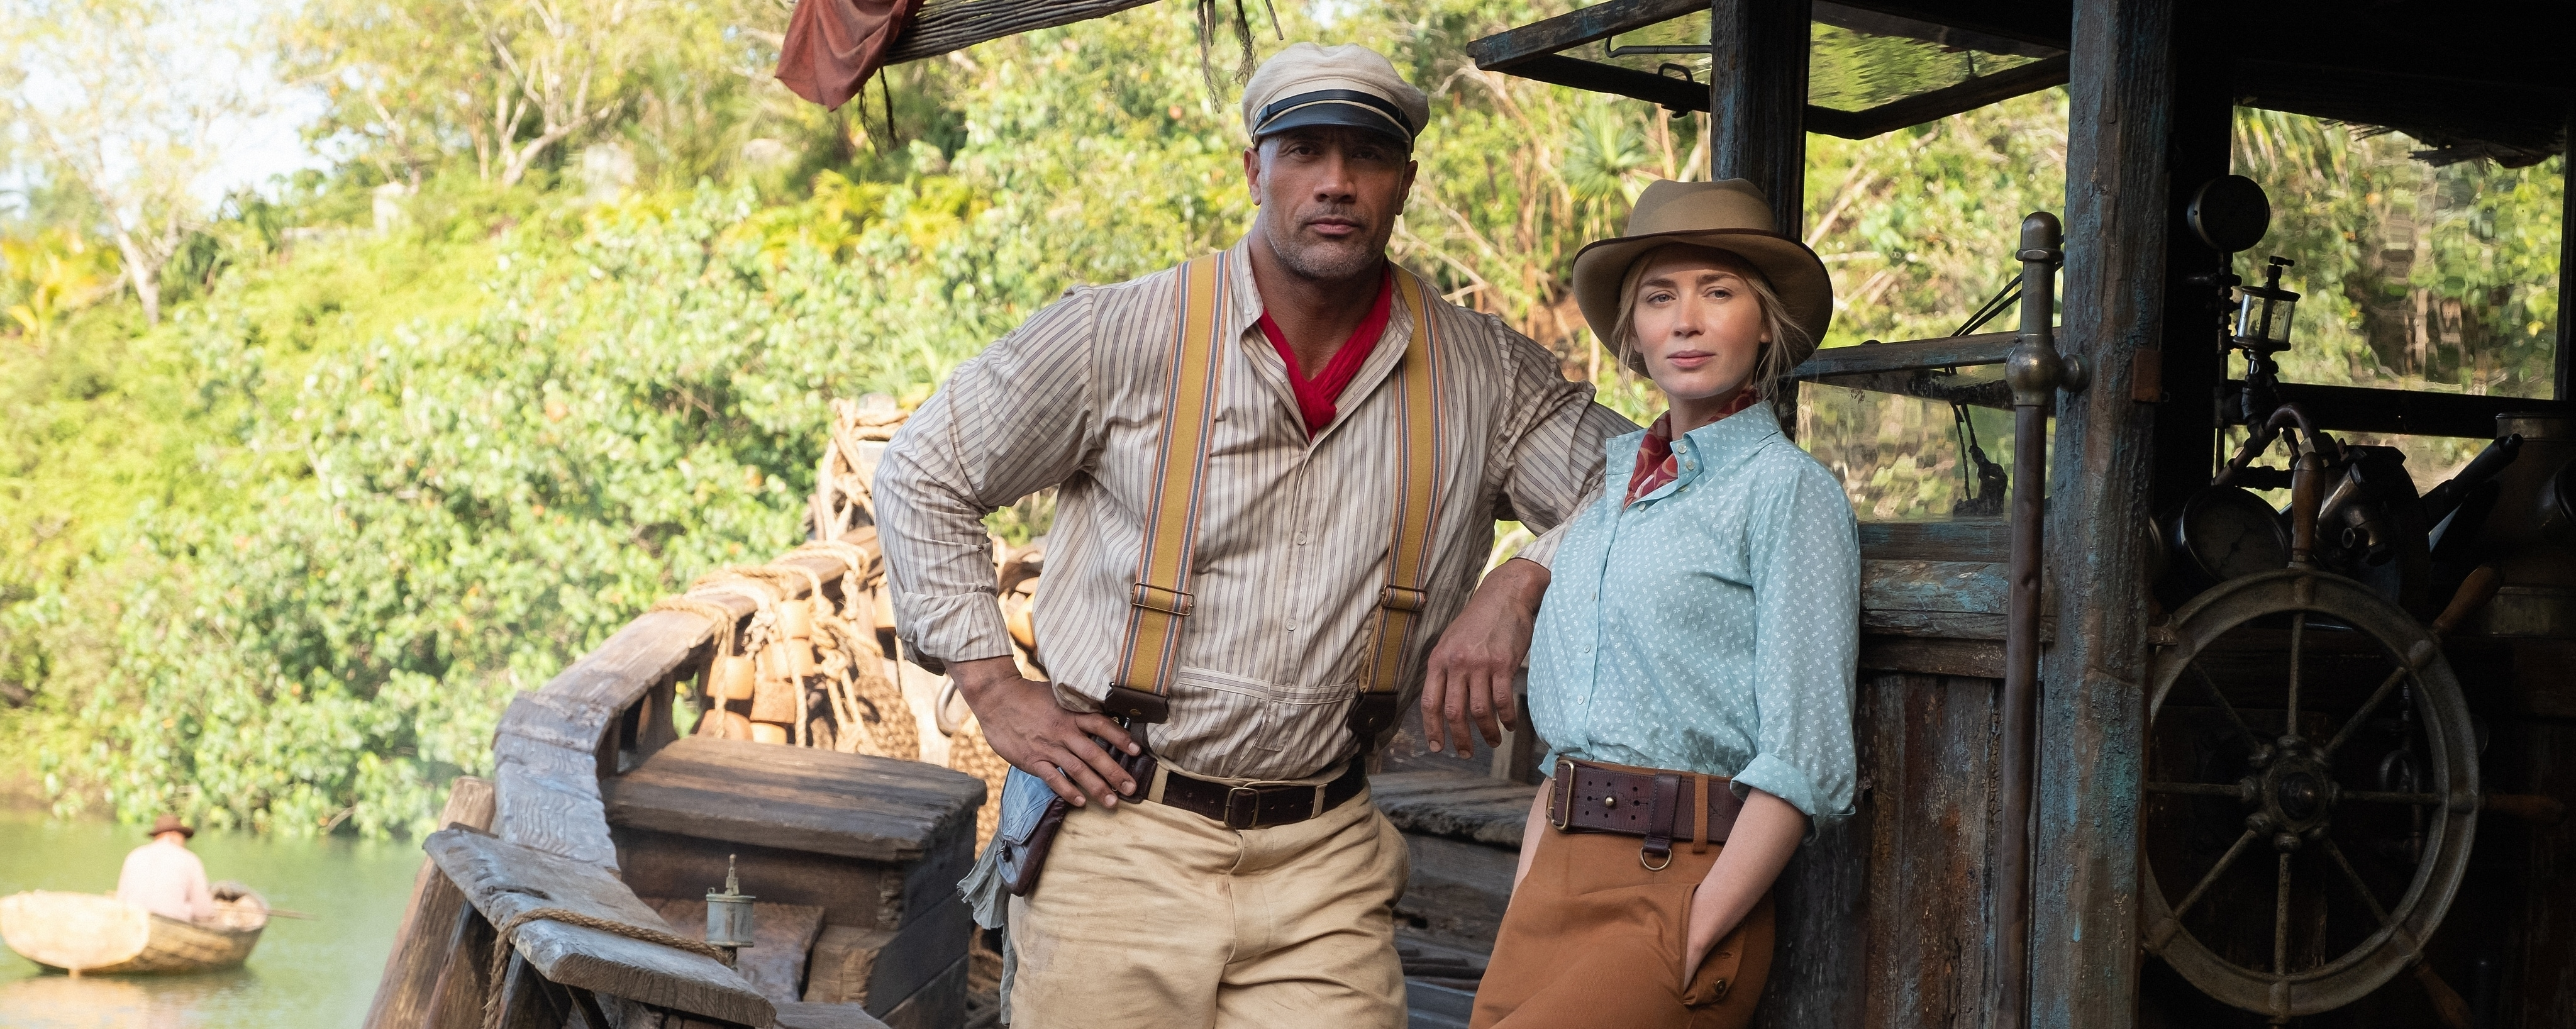 Emily Blunt and Dwayne Johnson Aboard La Quila in Disney's Jungle Cruise